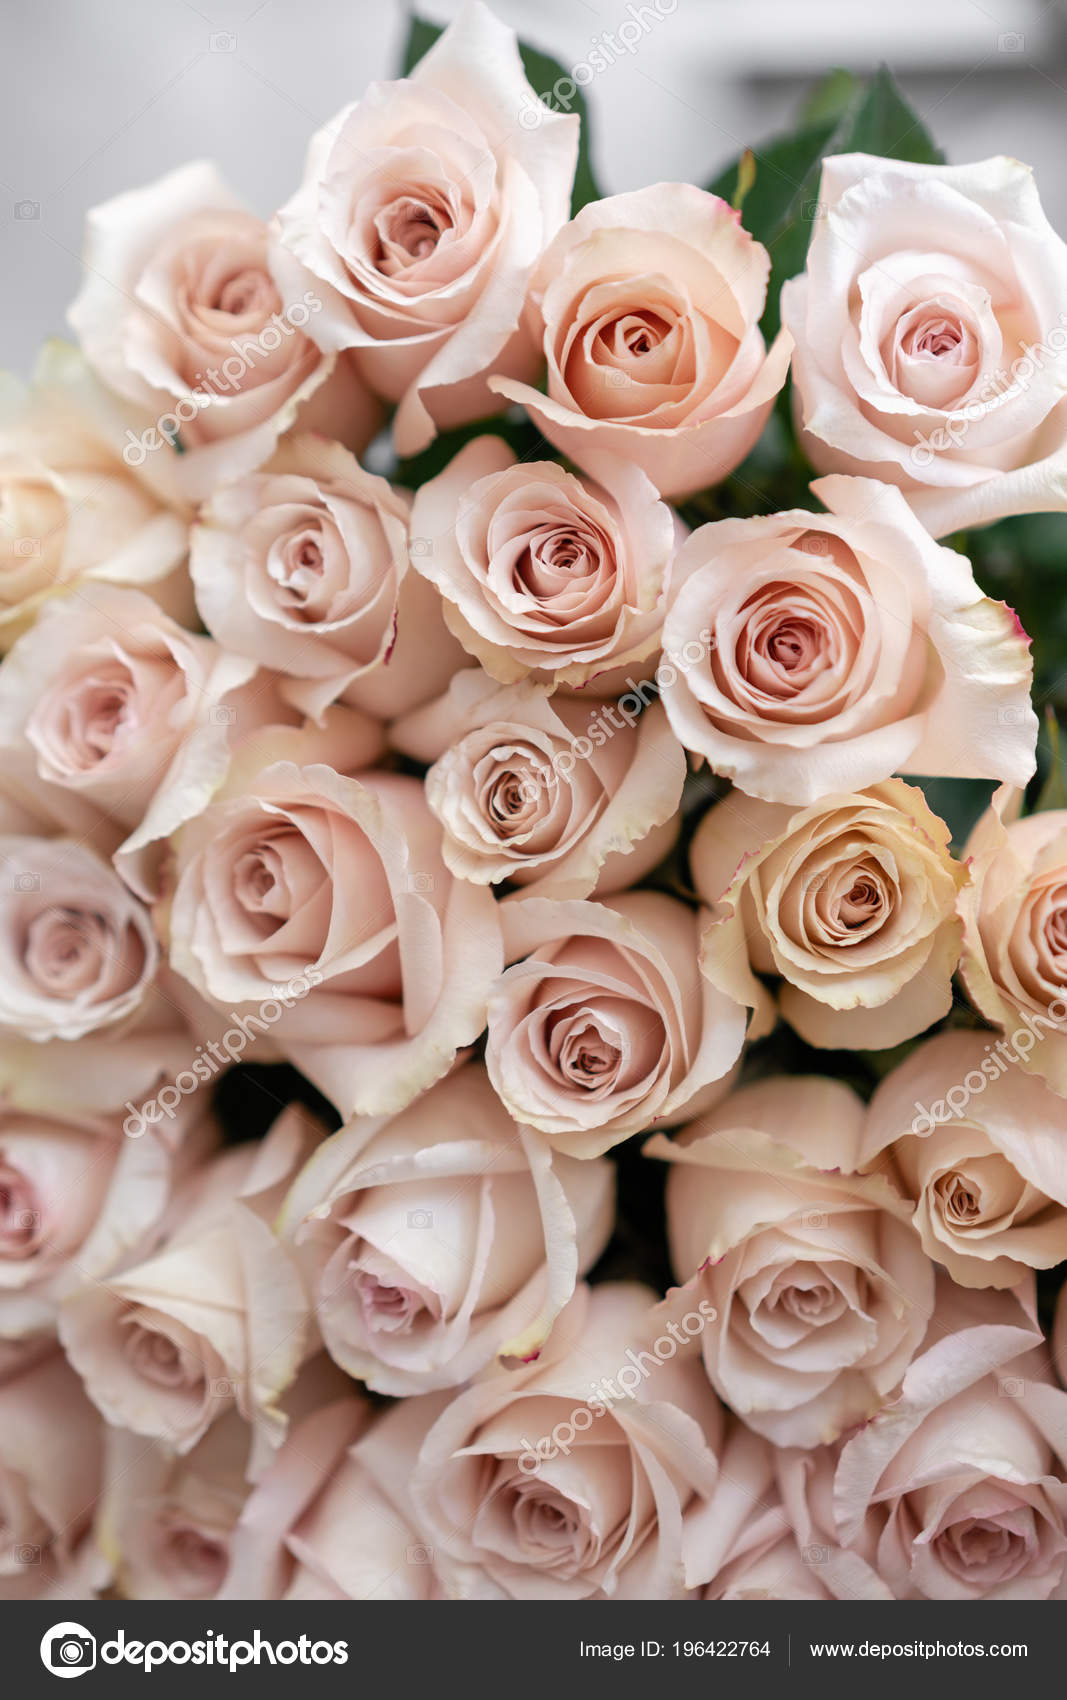 Pastel Pink Roses Bouquet Of Beautiful Flowers On Wooden Table Floristry Concept The Work Of The Florist At A Flower Shop Vertical Photo Stock Photo C Malkovkosta 196422764